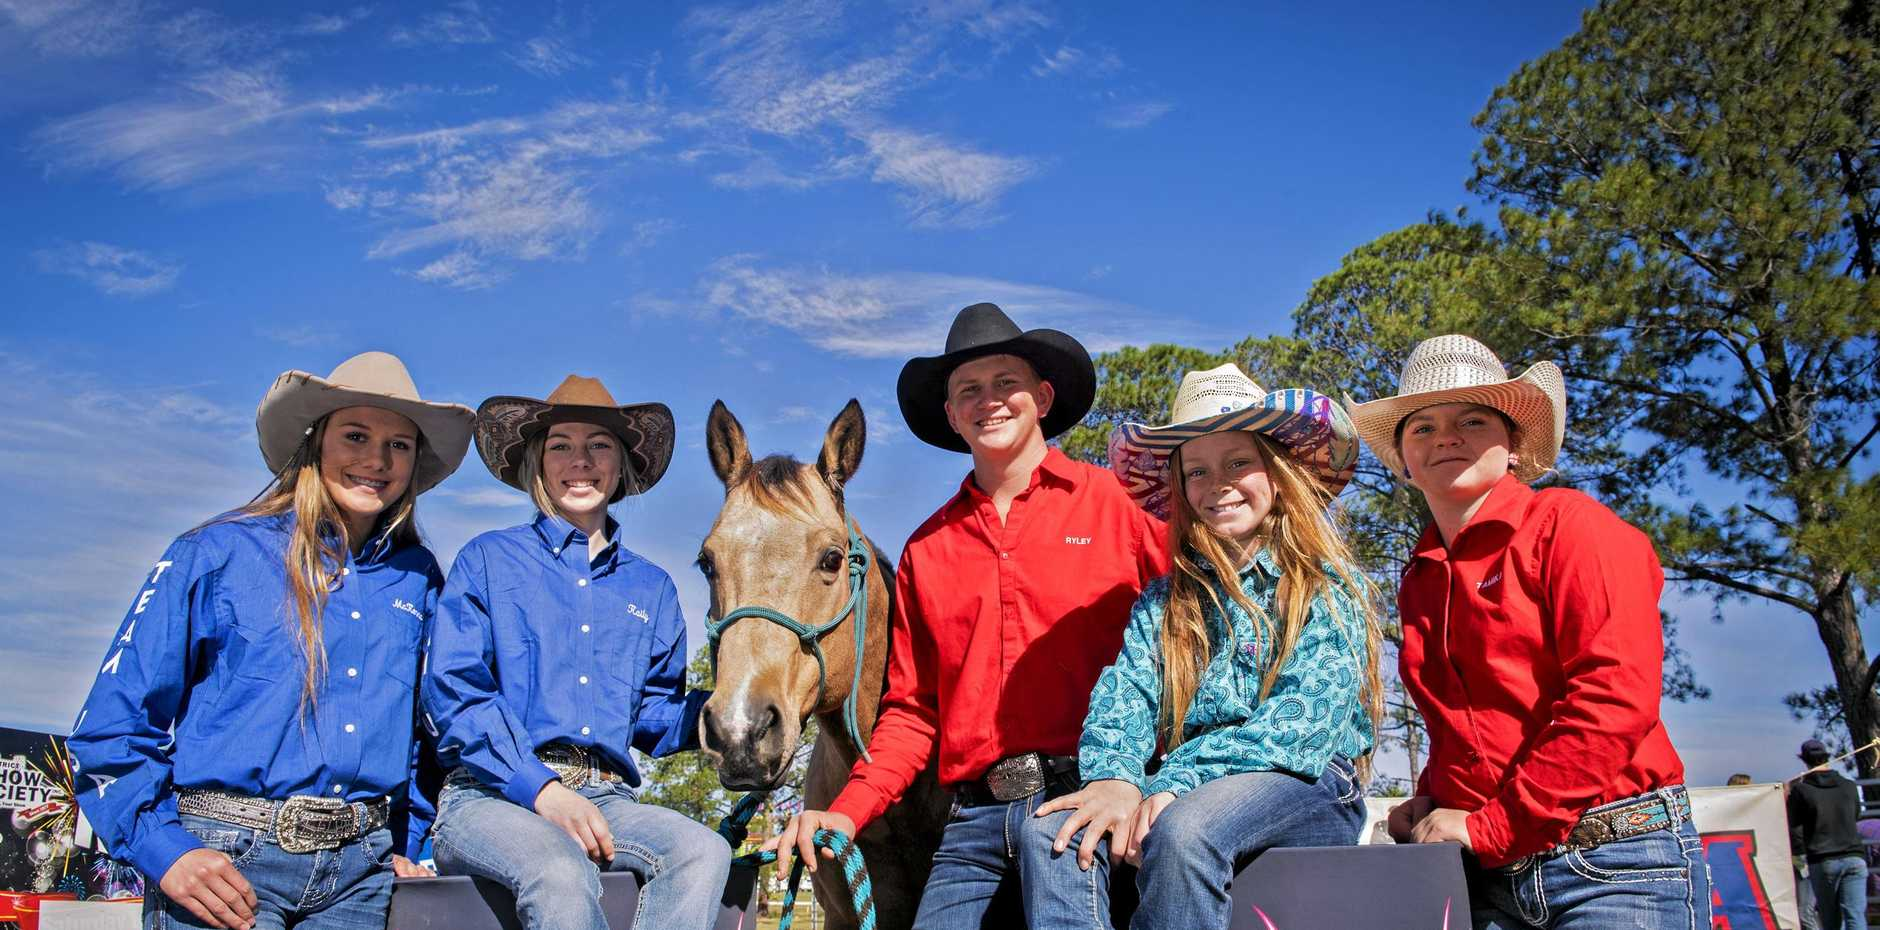 FROM LEFT: McKenna Battjes, Kaily Sooy, Ryley Burke (with Rebel), Sky Sanders and Emi Carlson prepare for tomorrow's under-18 International Barrel Race competition. ABSENT: Georgie Sarginson.